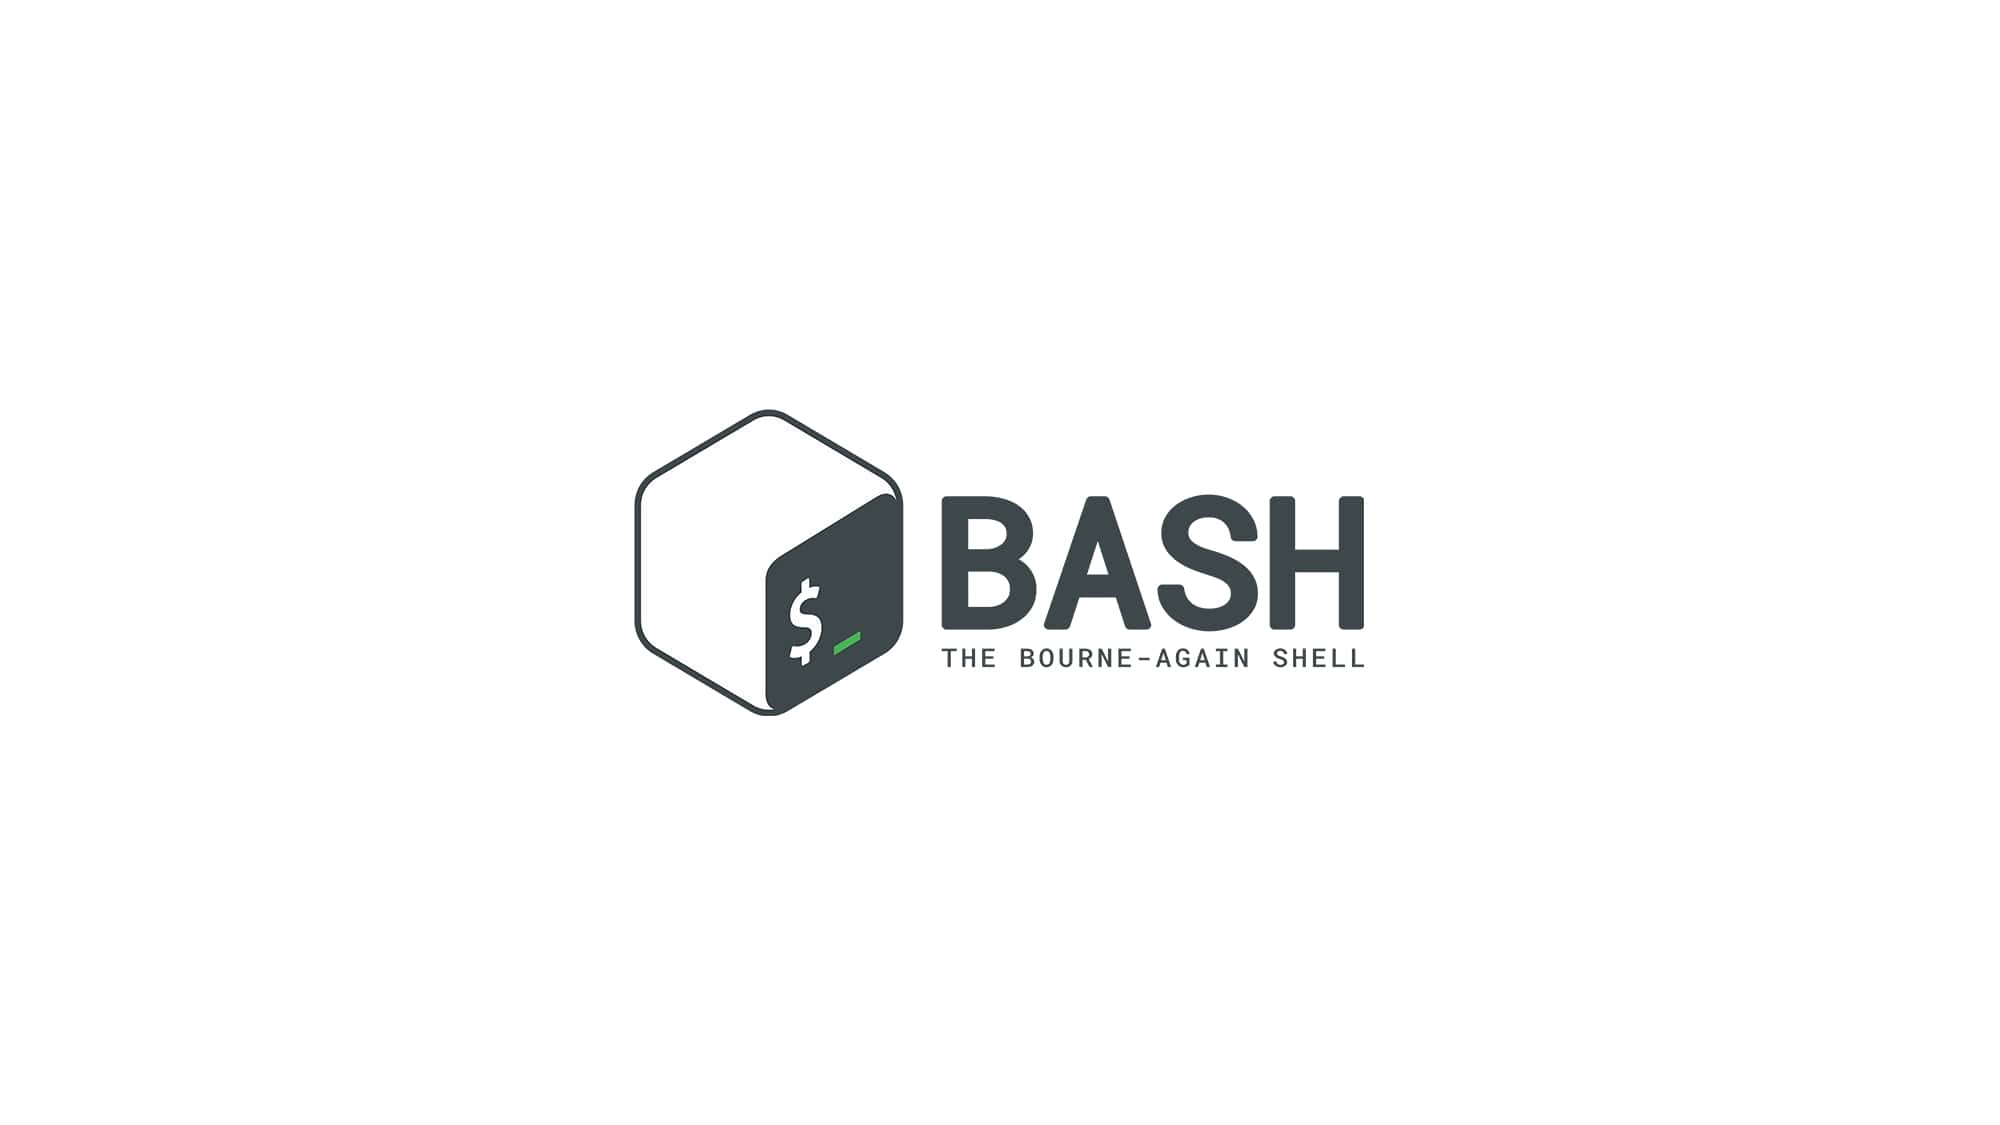 Come verificare se una stringa contiene una substring in Bash